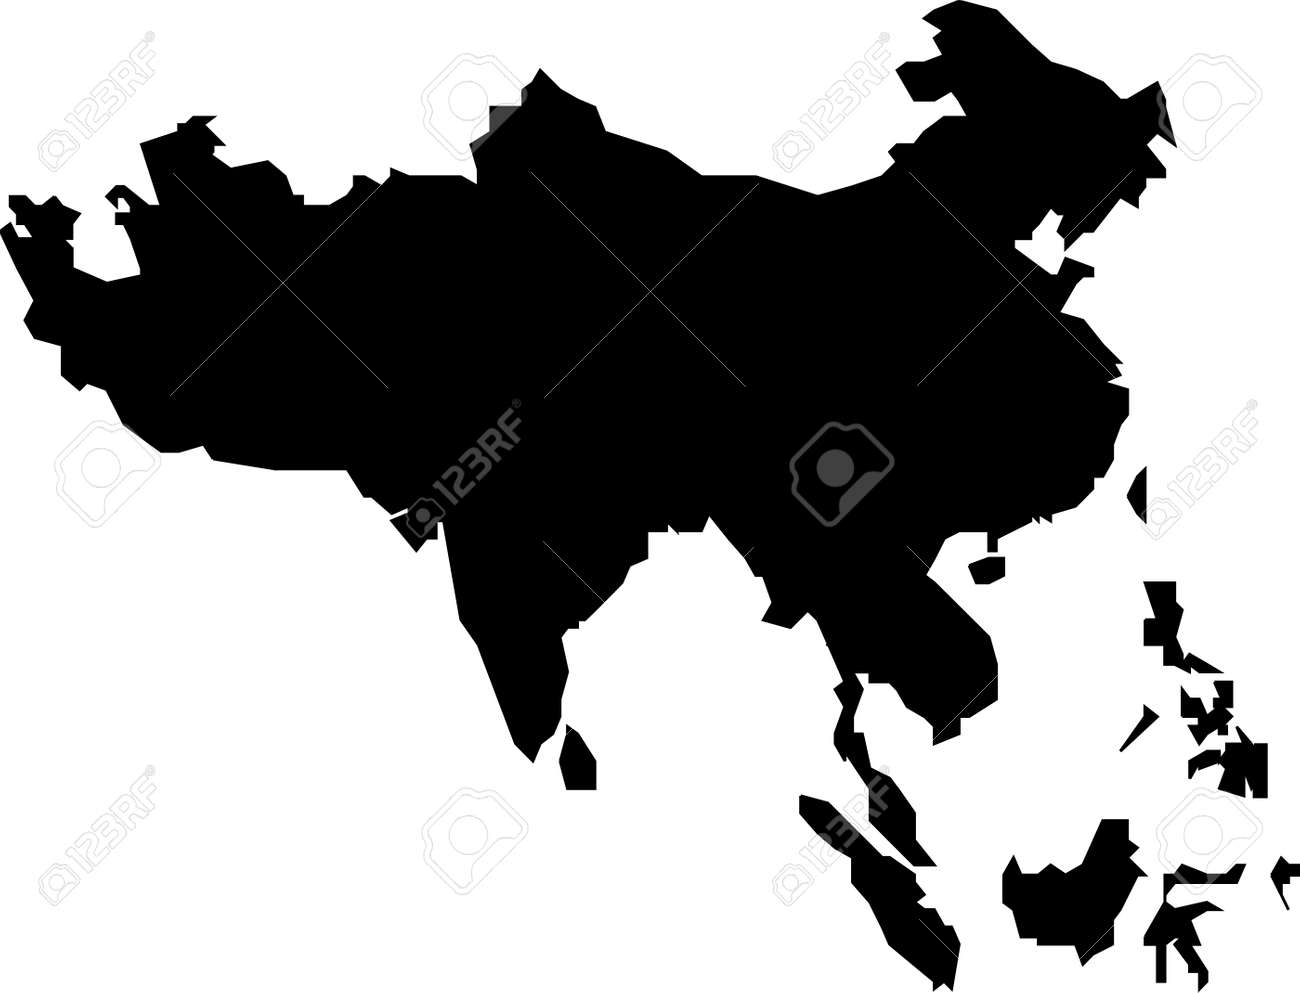 Map Of Southern Asia, Black Stock Photo, Picture And Royalty Free